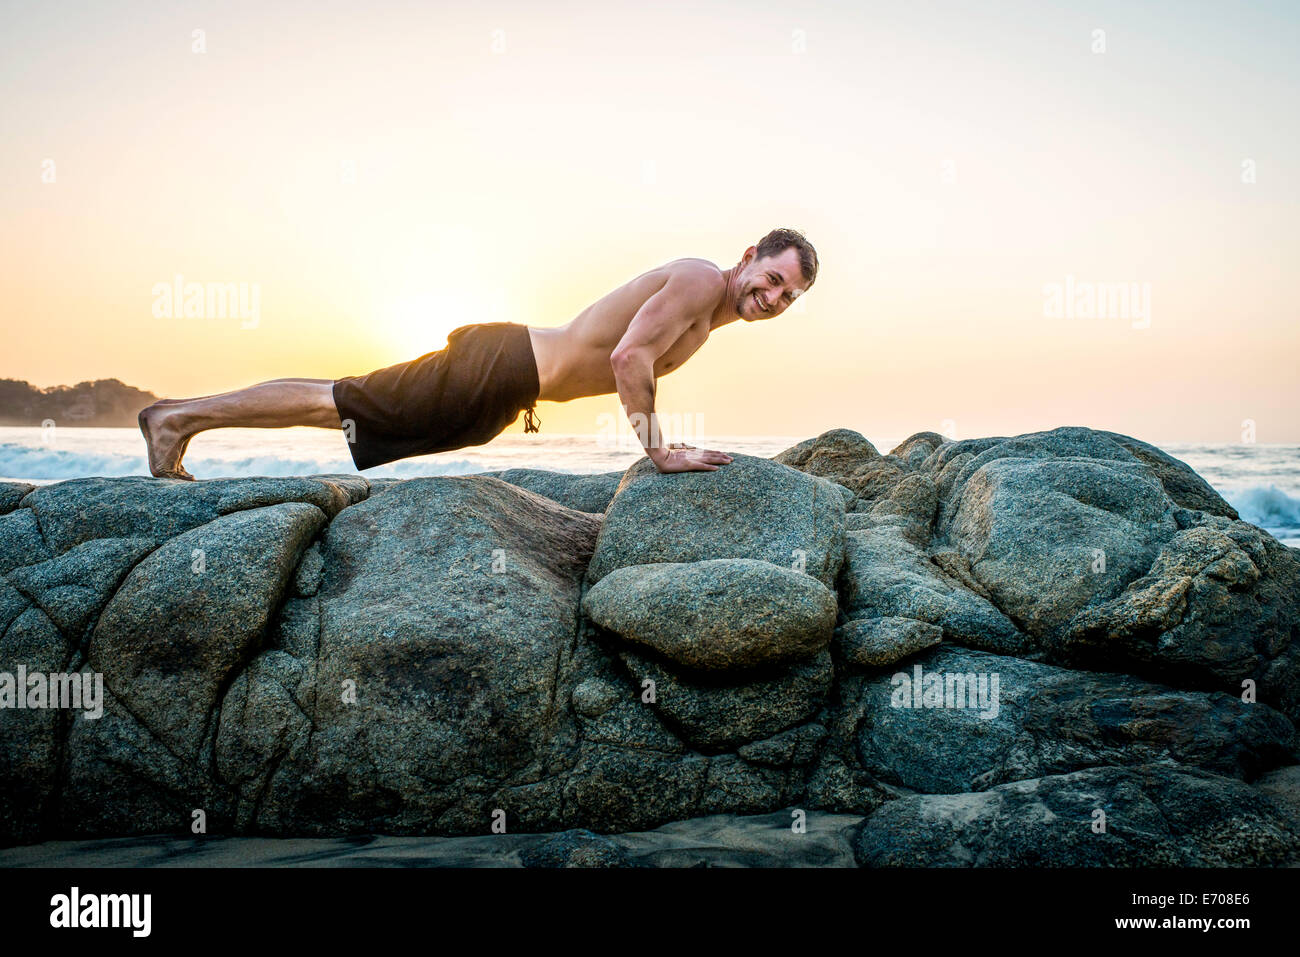 Mid adult man doing push-ups sur des rochers à la plage Photo Stock